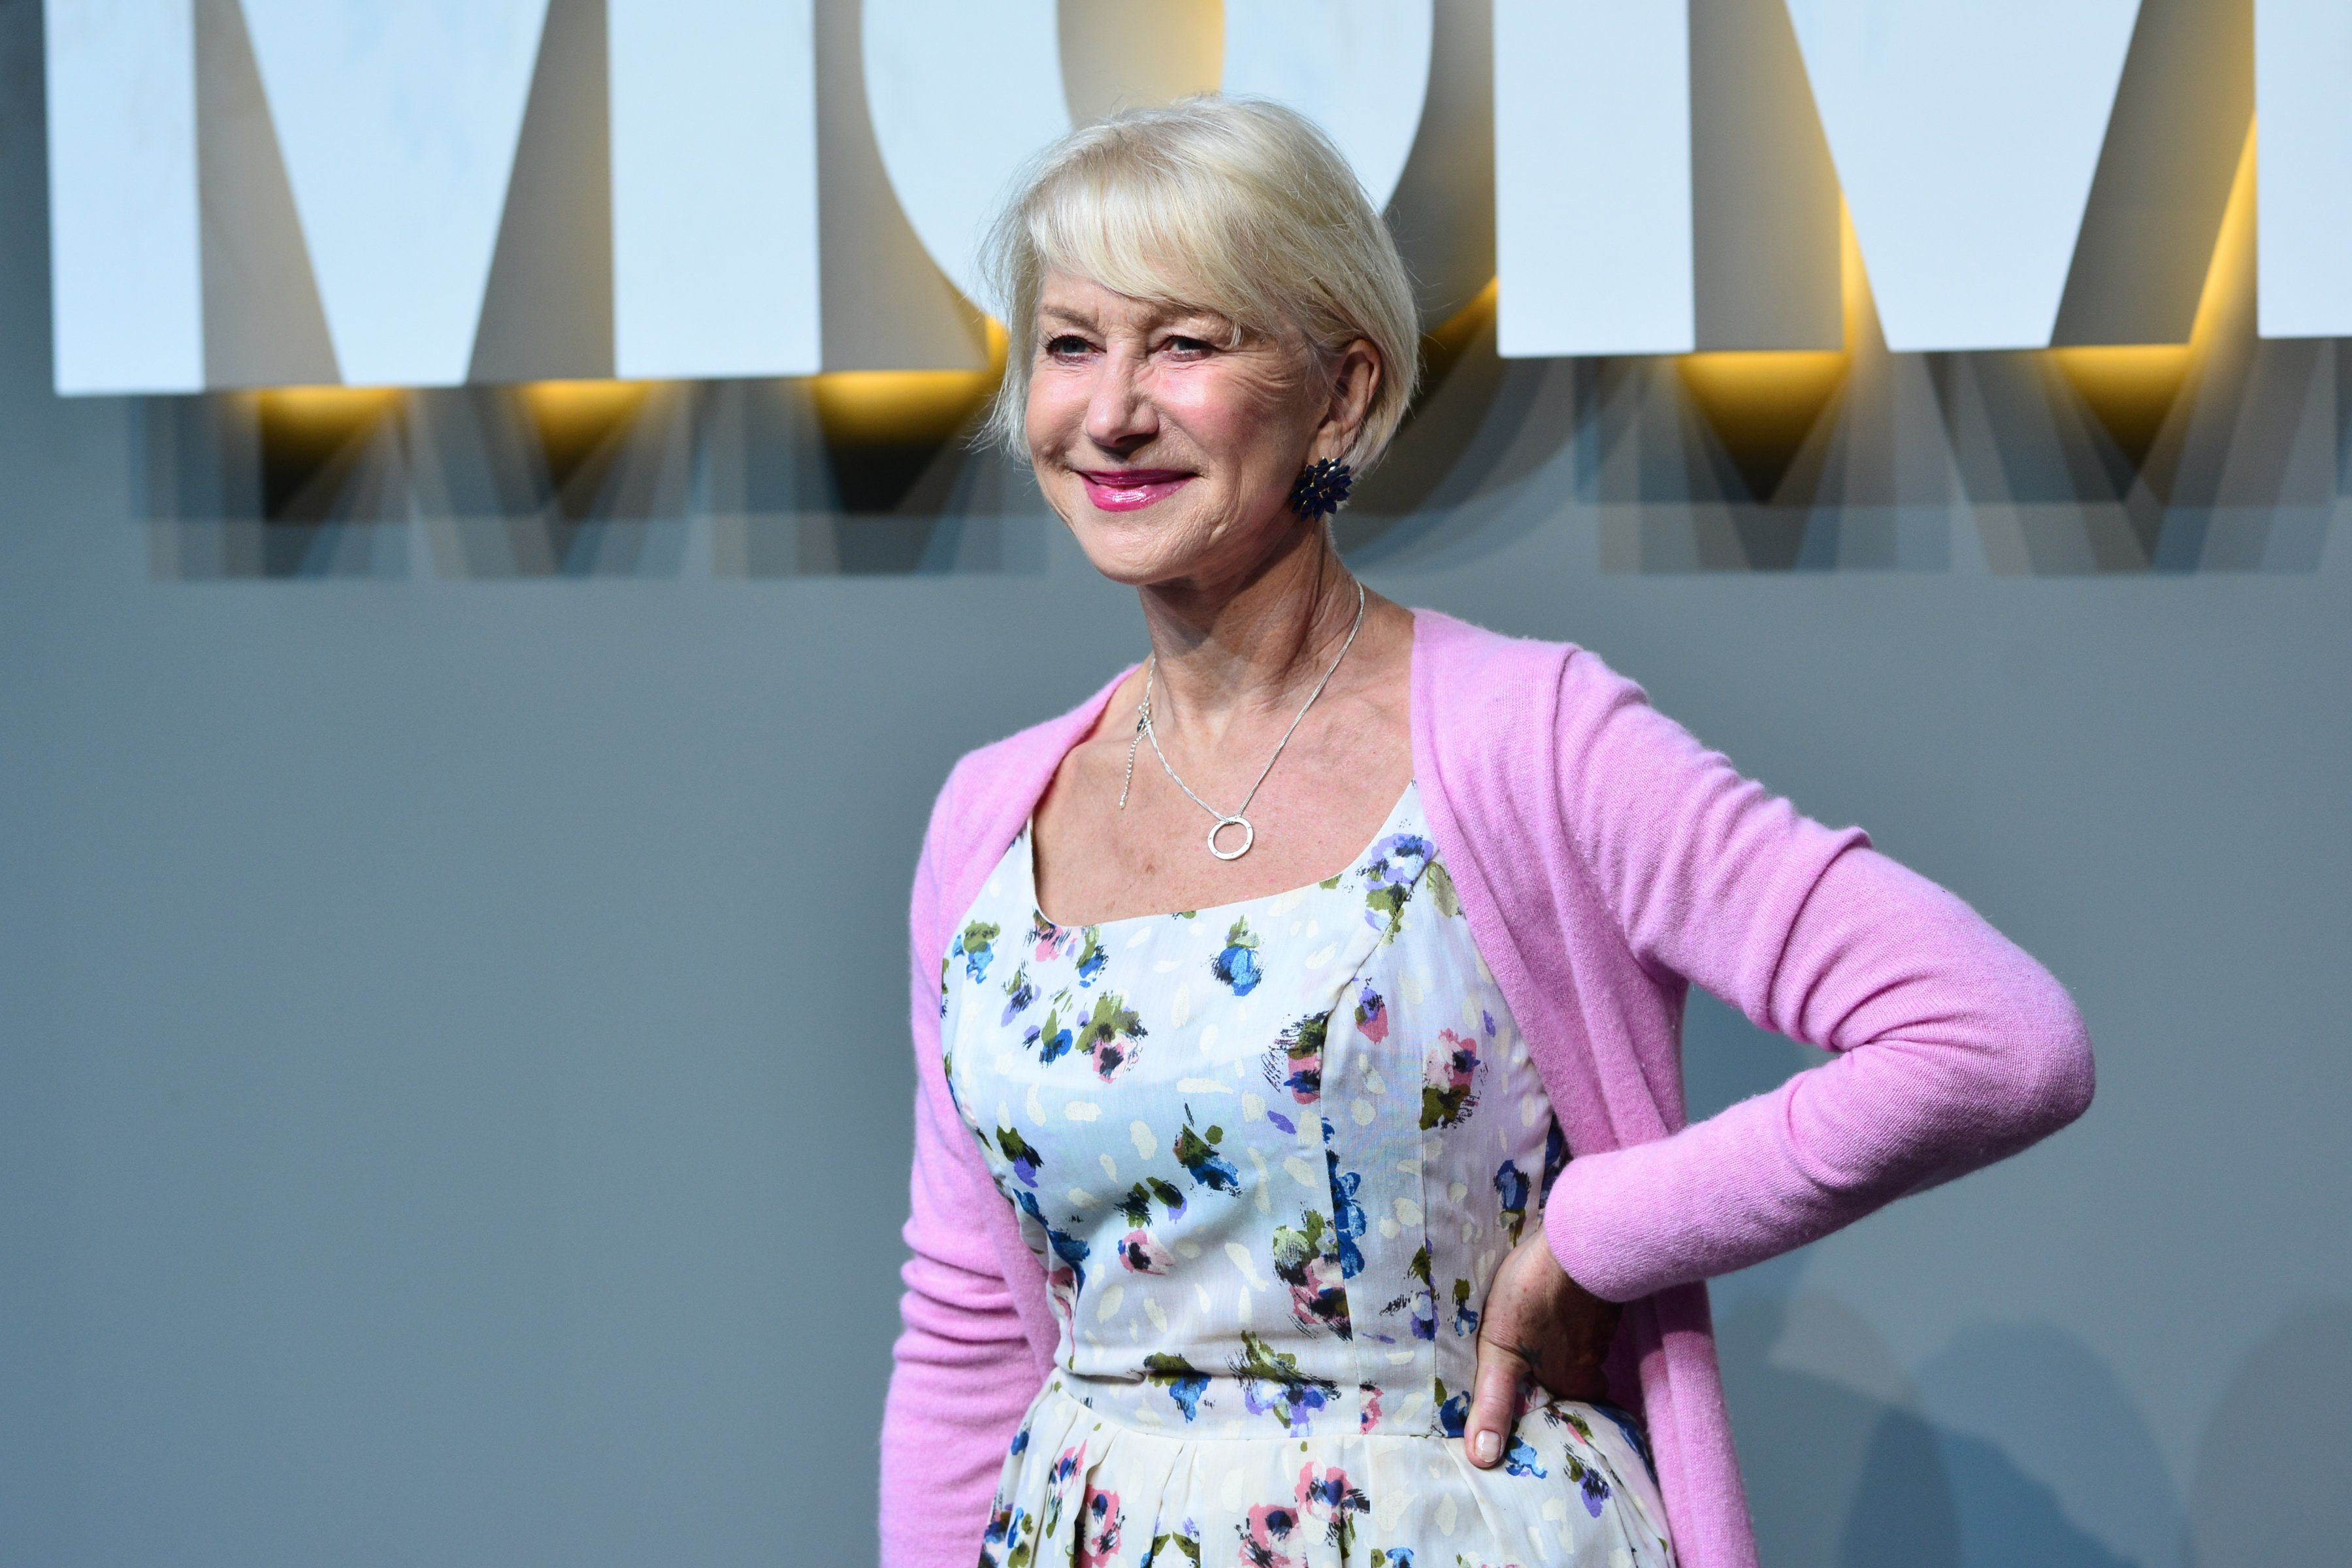 Helen Mirren Discusses Hollywood Sexism And